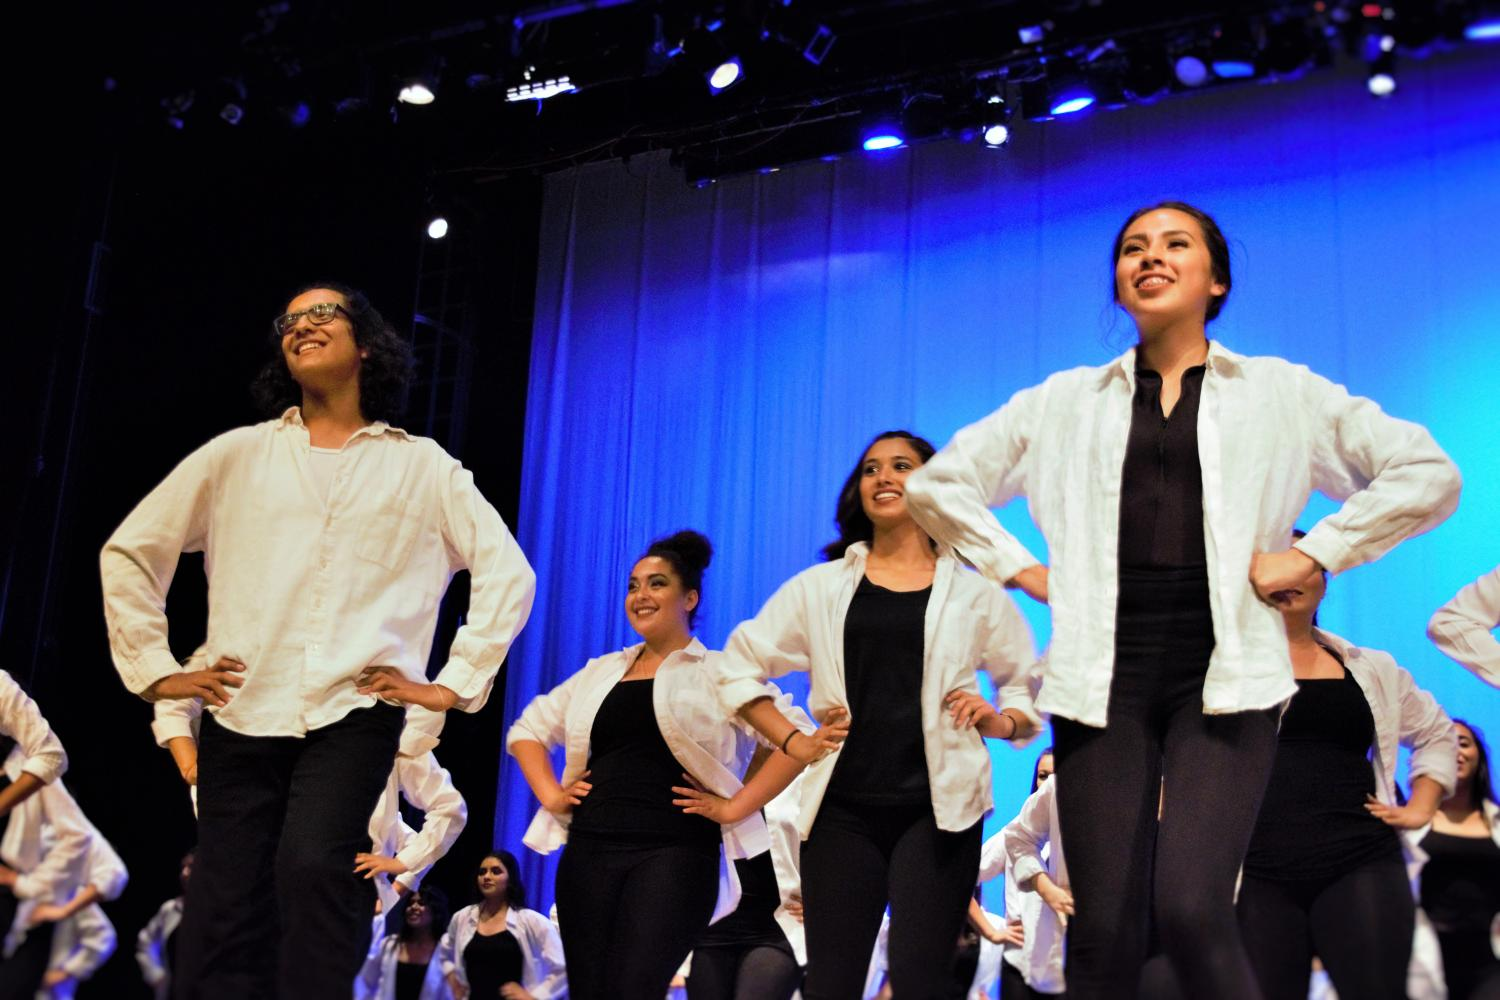 Spring Dance Show: Planet Dance